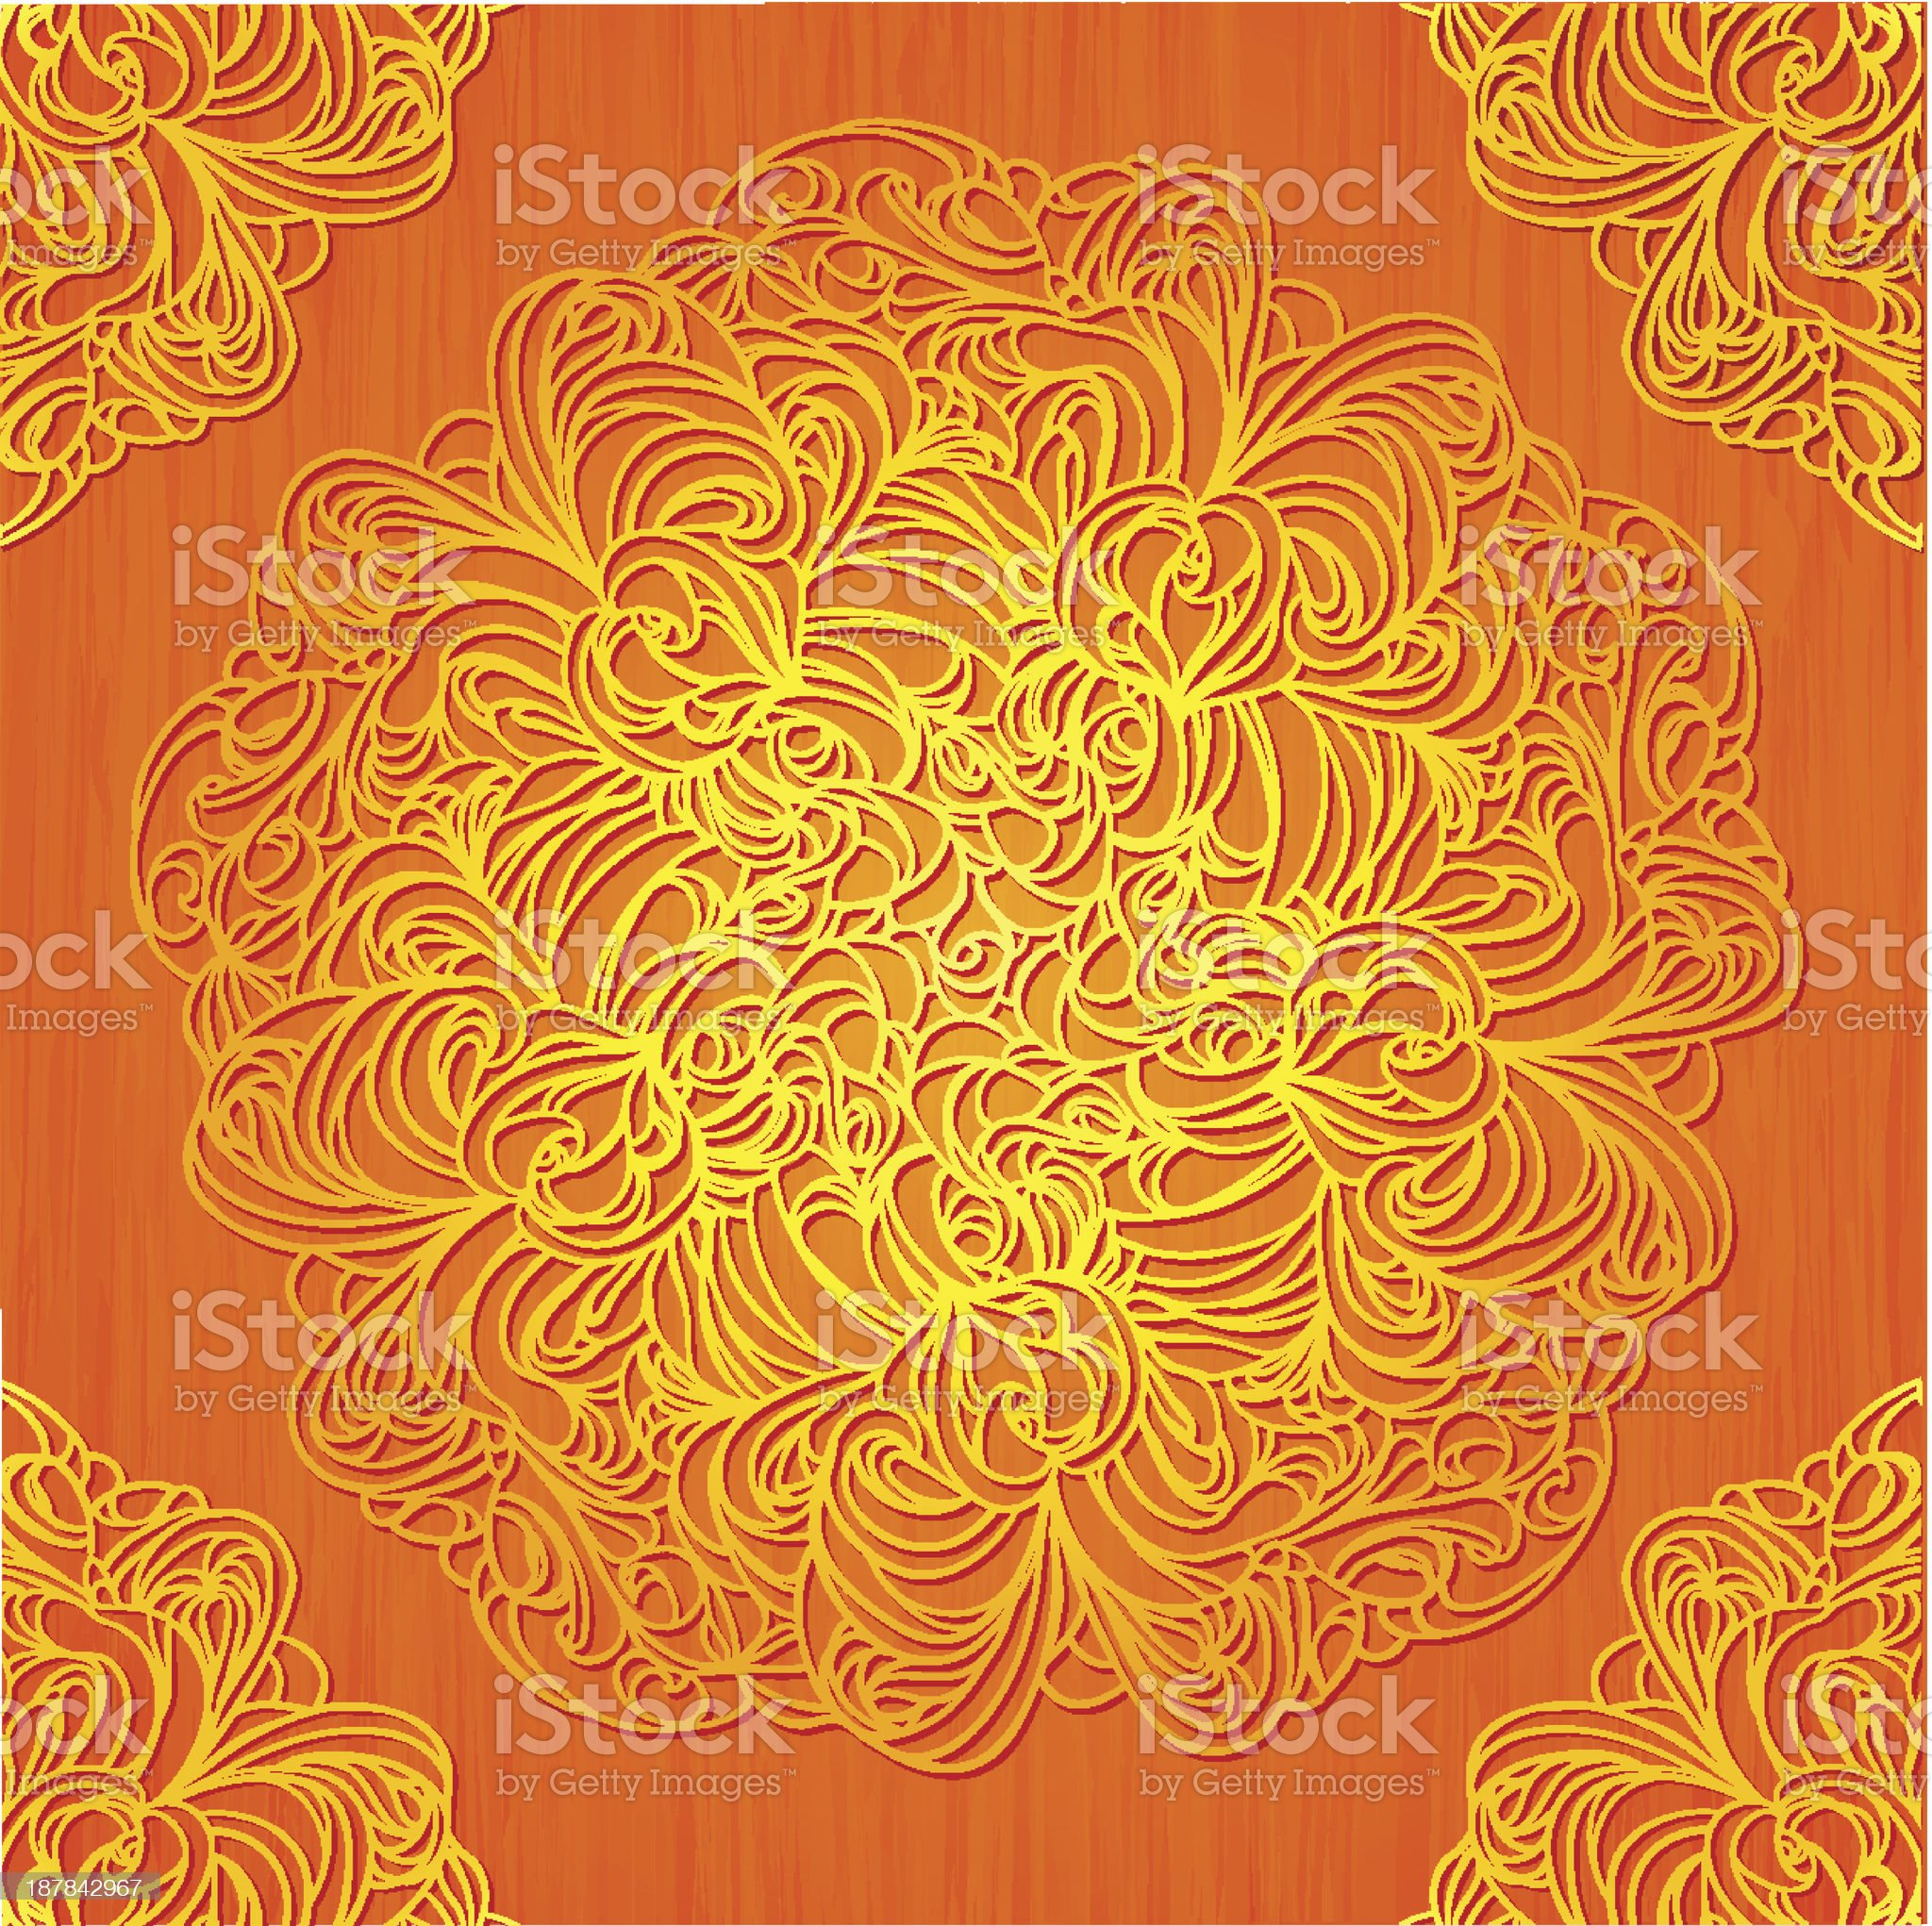 Ornamental round lace decor on grunge background. royalty-free stock vector art